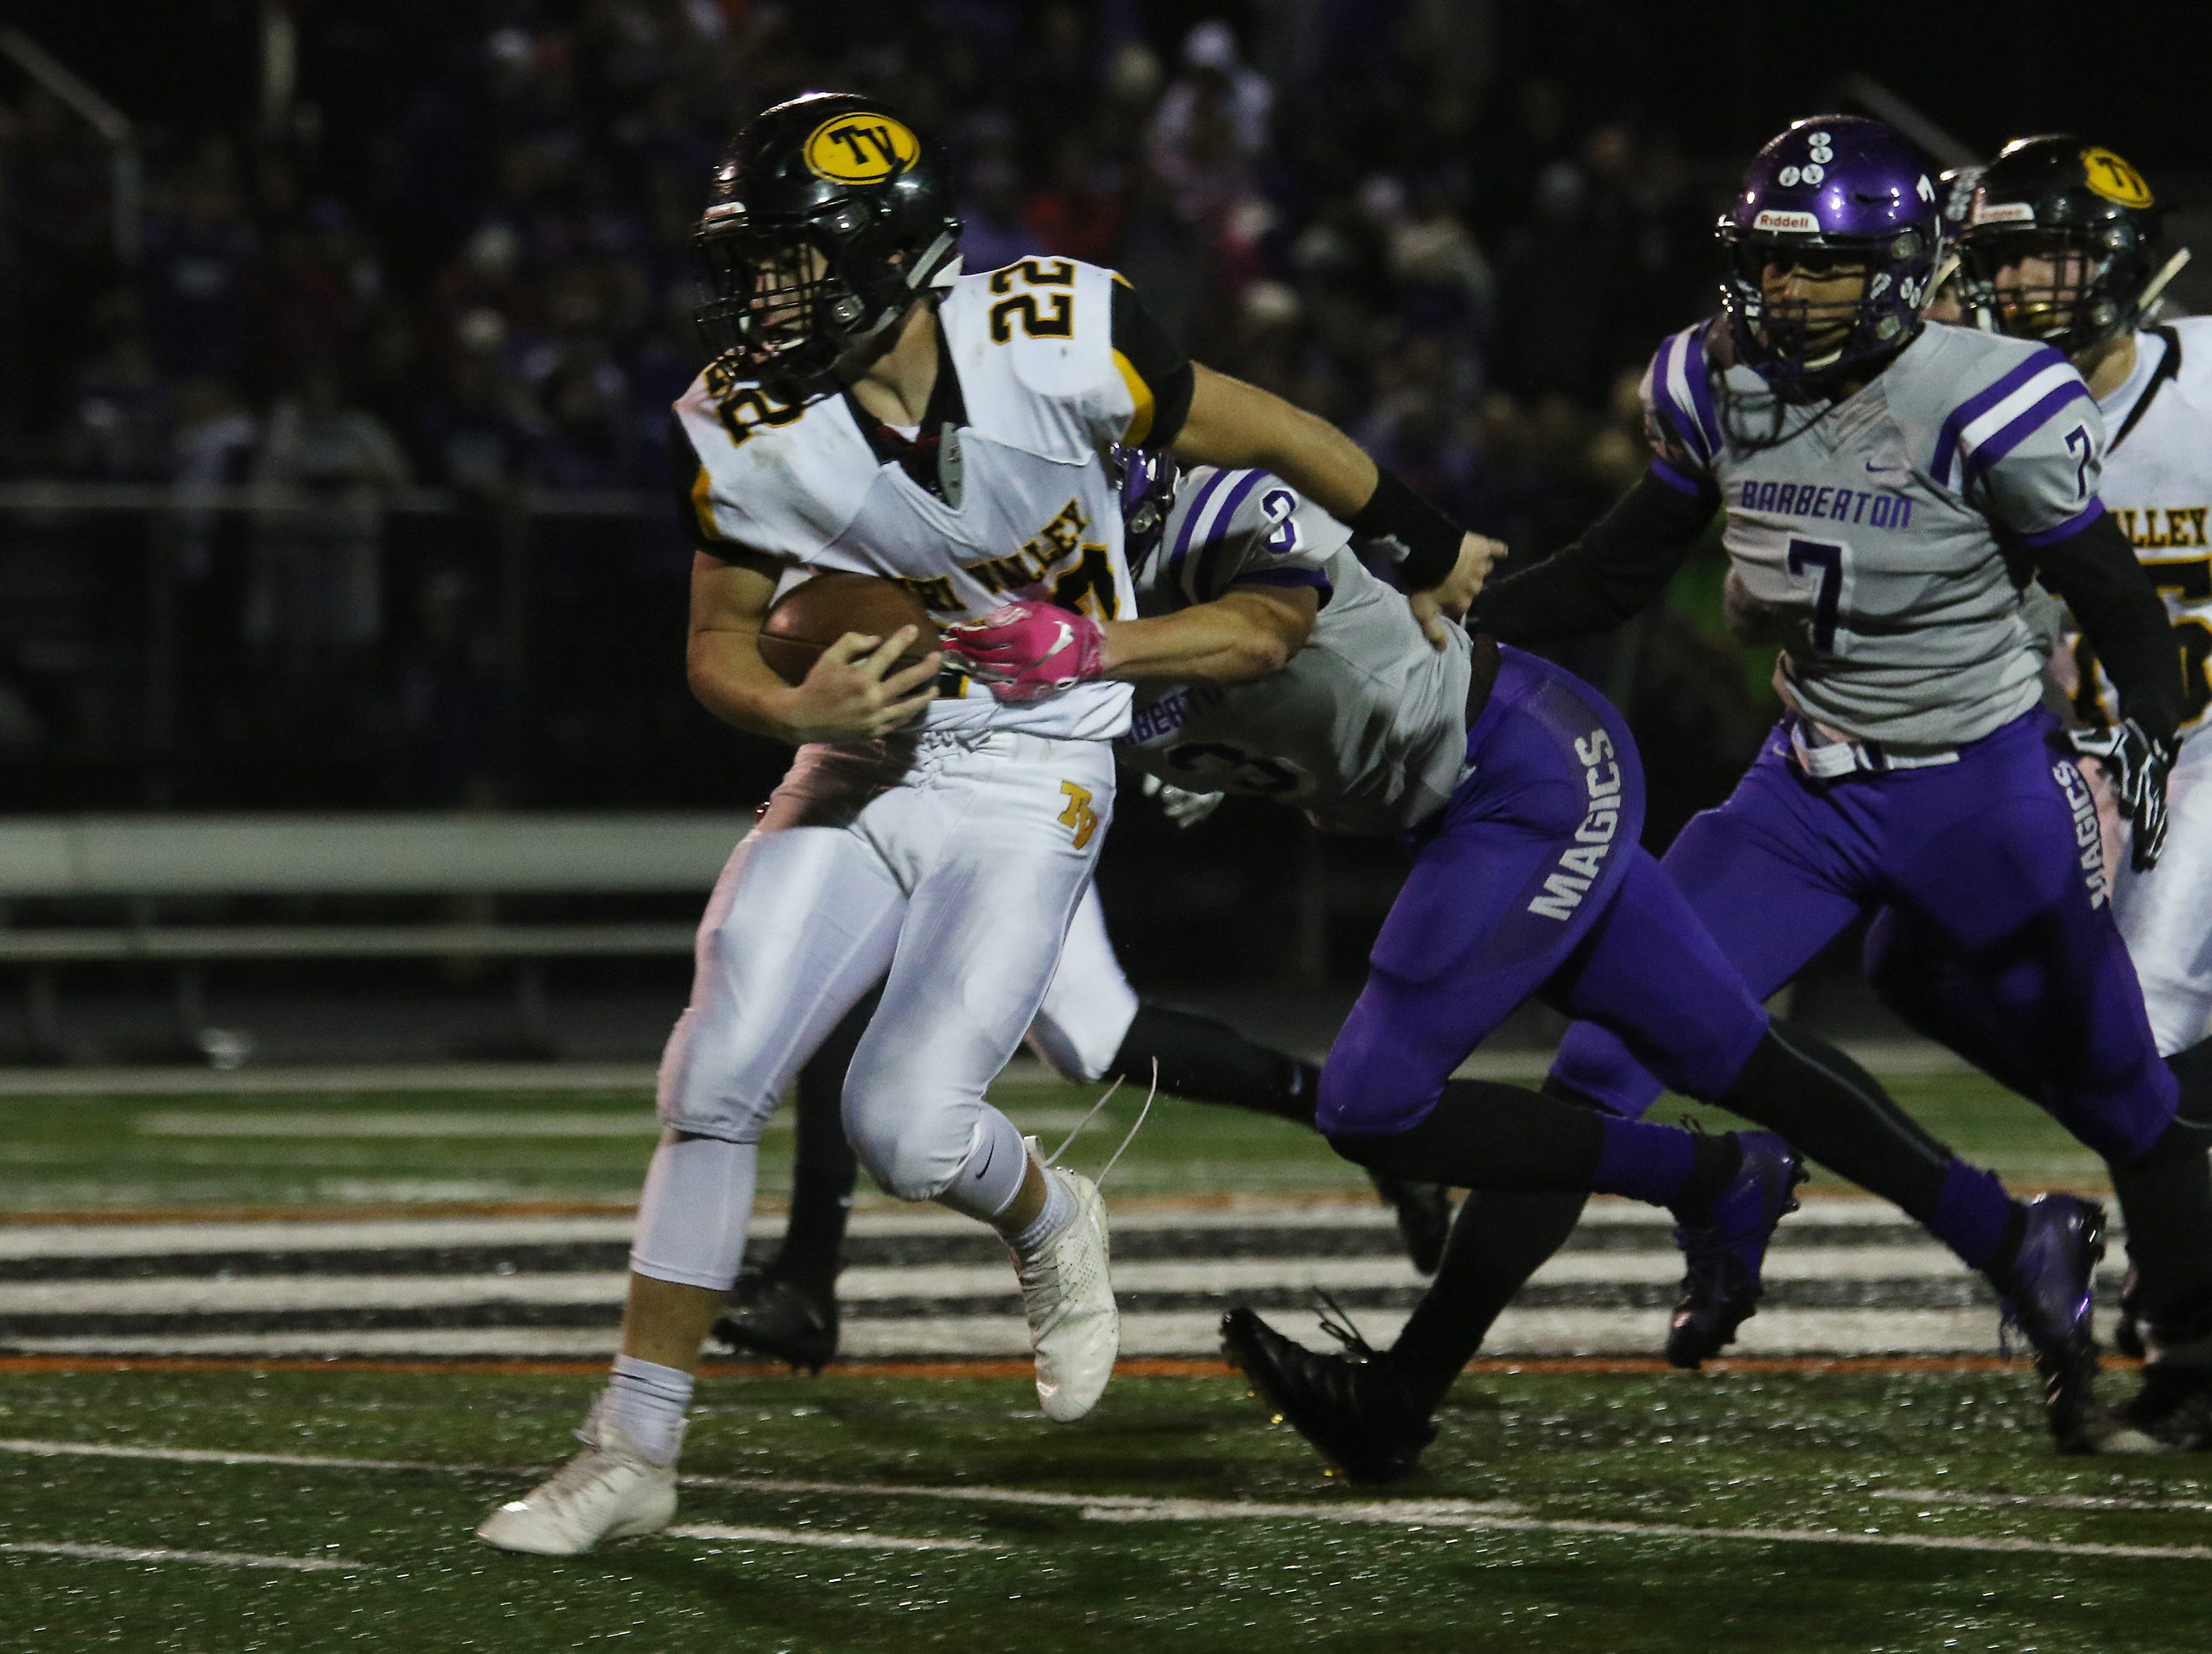 Tri-Valley's Blake Sands carries the ball against Barberton.